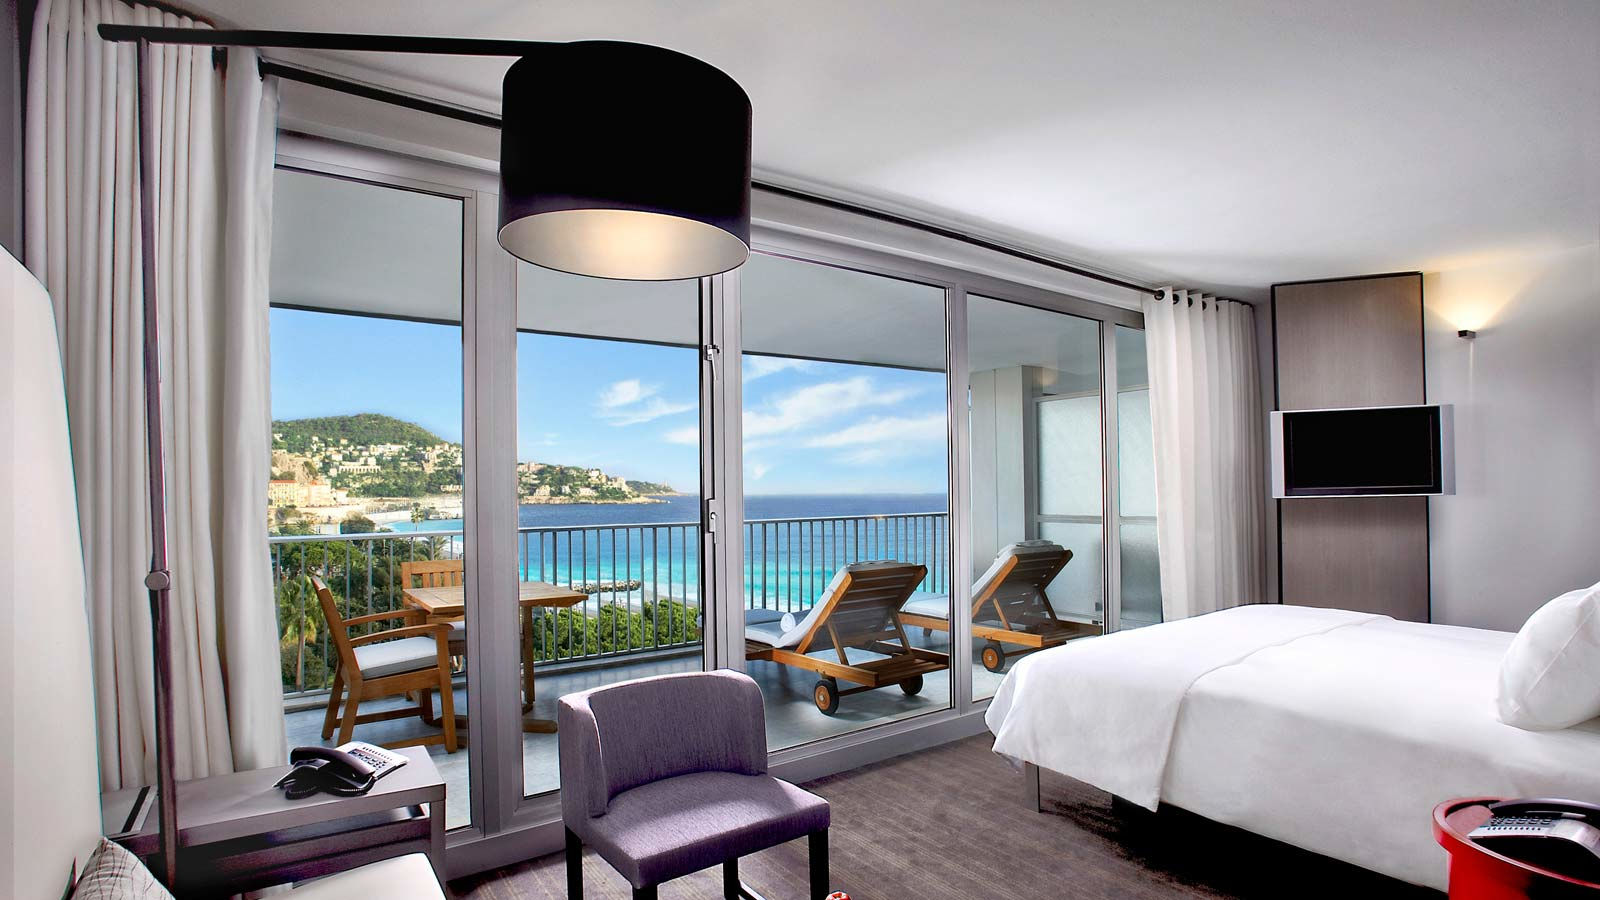 Camera Executive Vista Mare e giardini in Le Meridien Nice